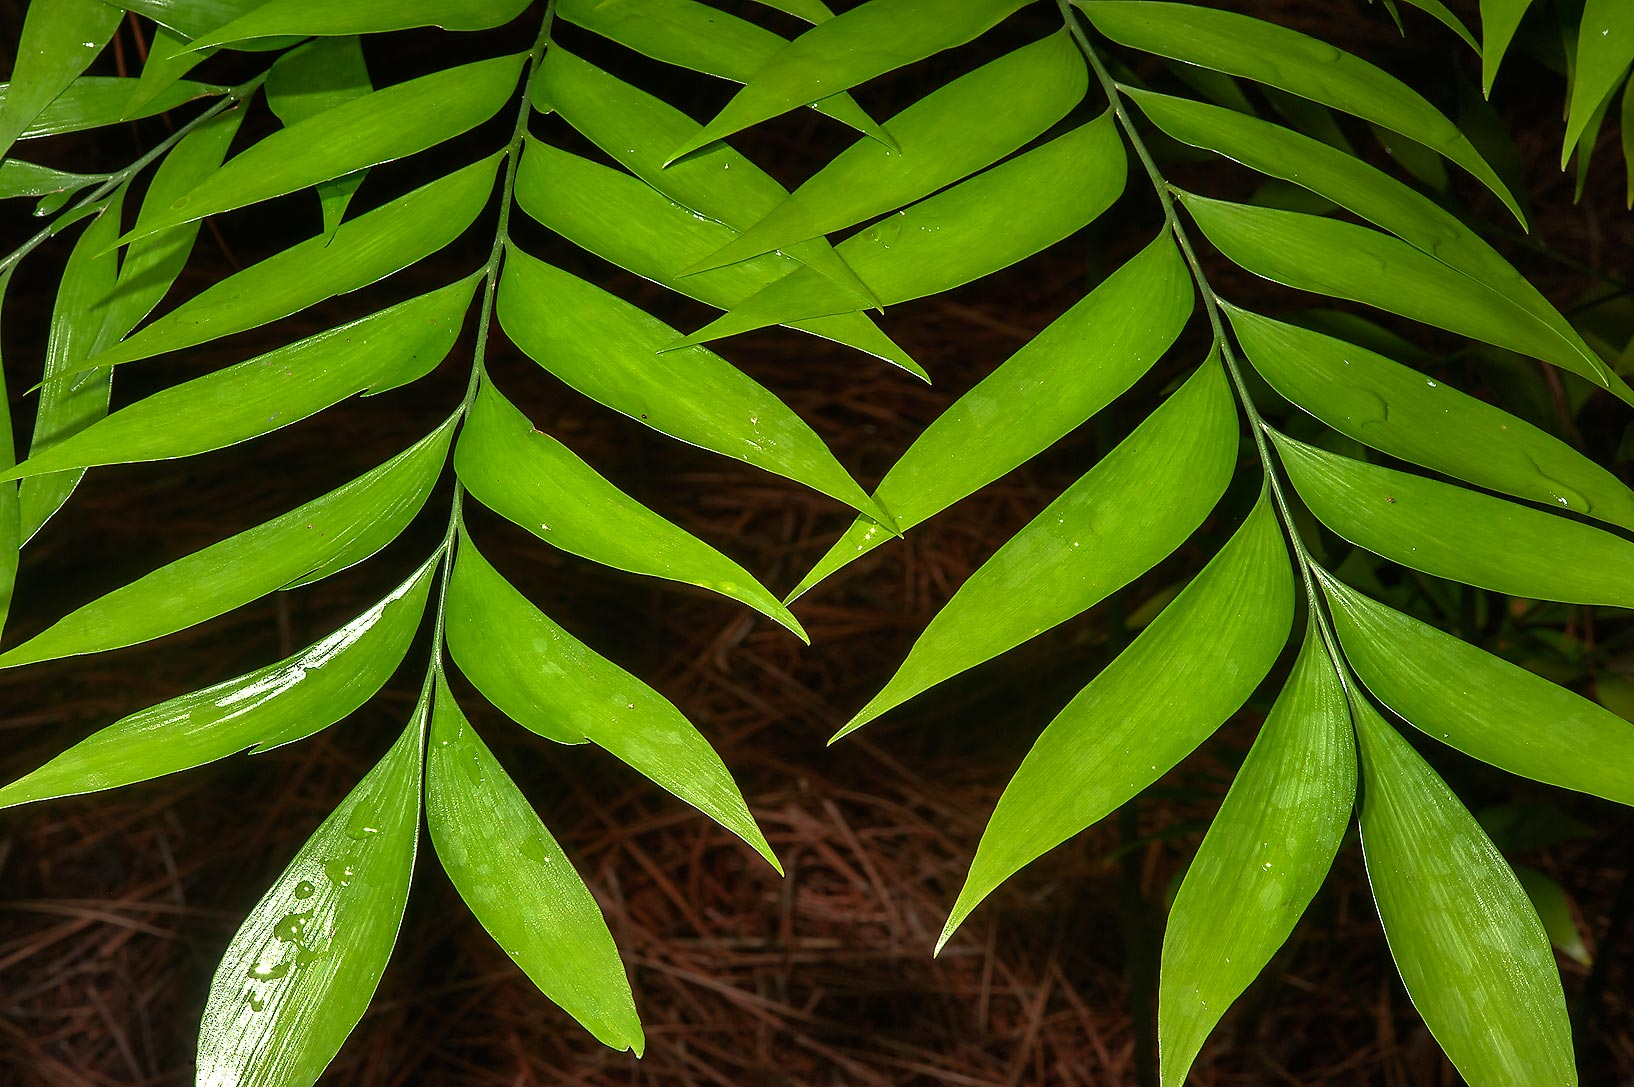 Fern leaves in Mercer Arboretum and Botanical Gardens. Humble (Houston area), Texas